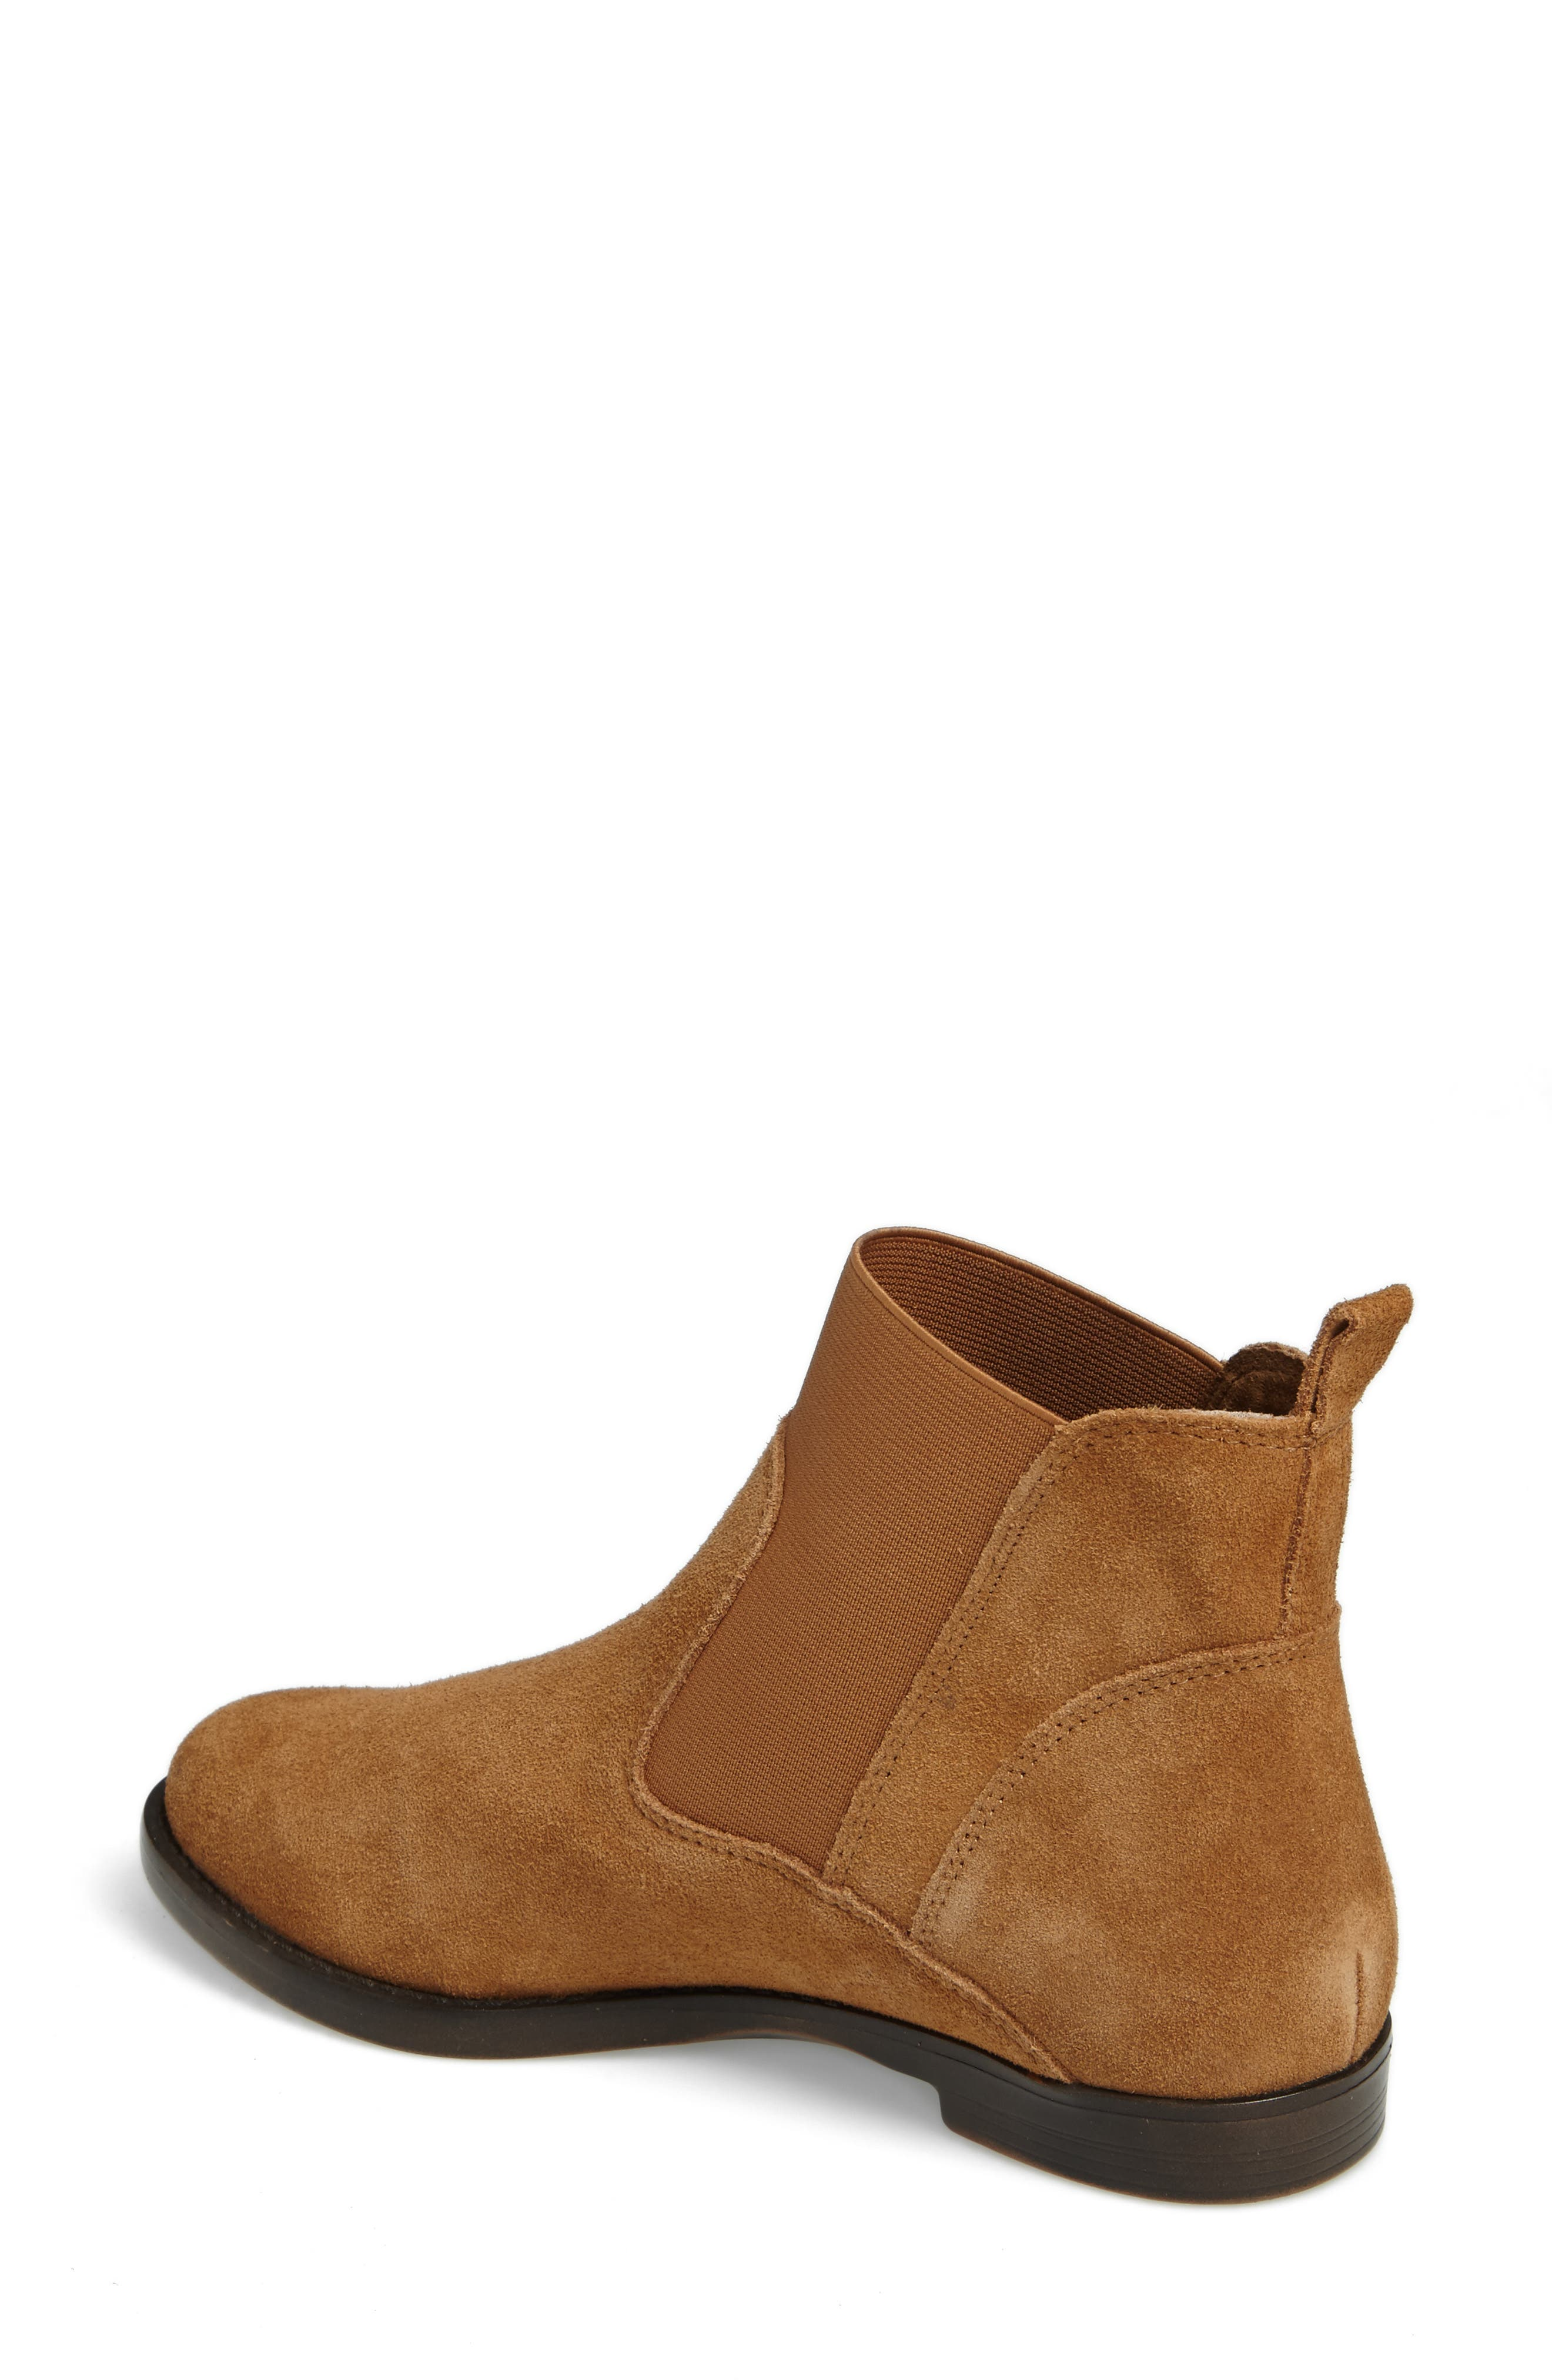 Rayna Chelsea Boot,                             Alternate thumbnail 2, color,                             Tan Suede